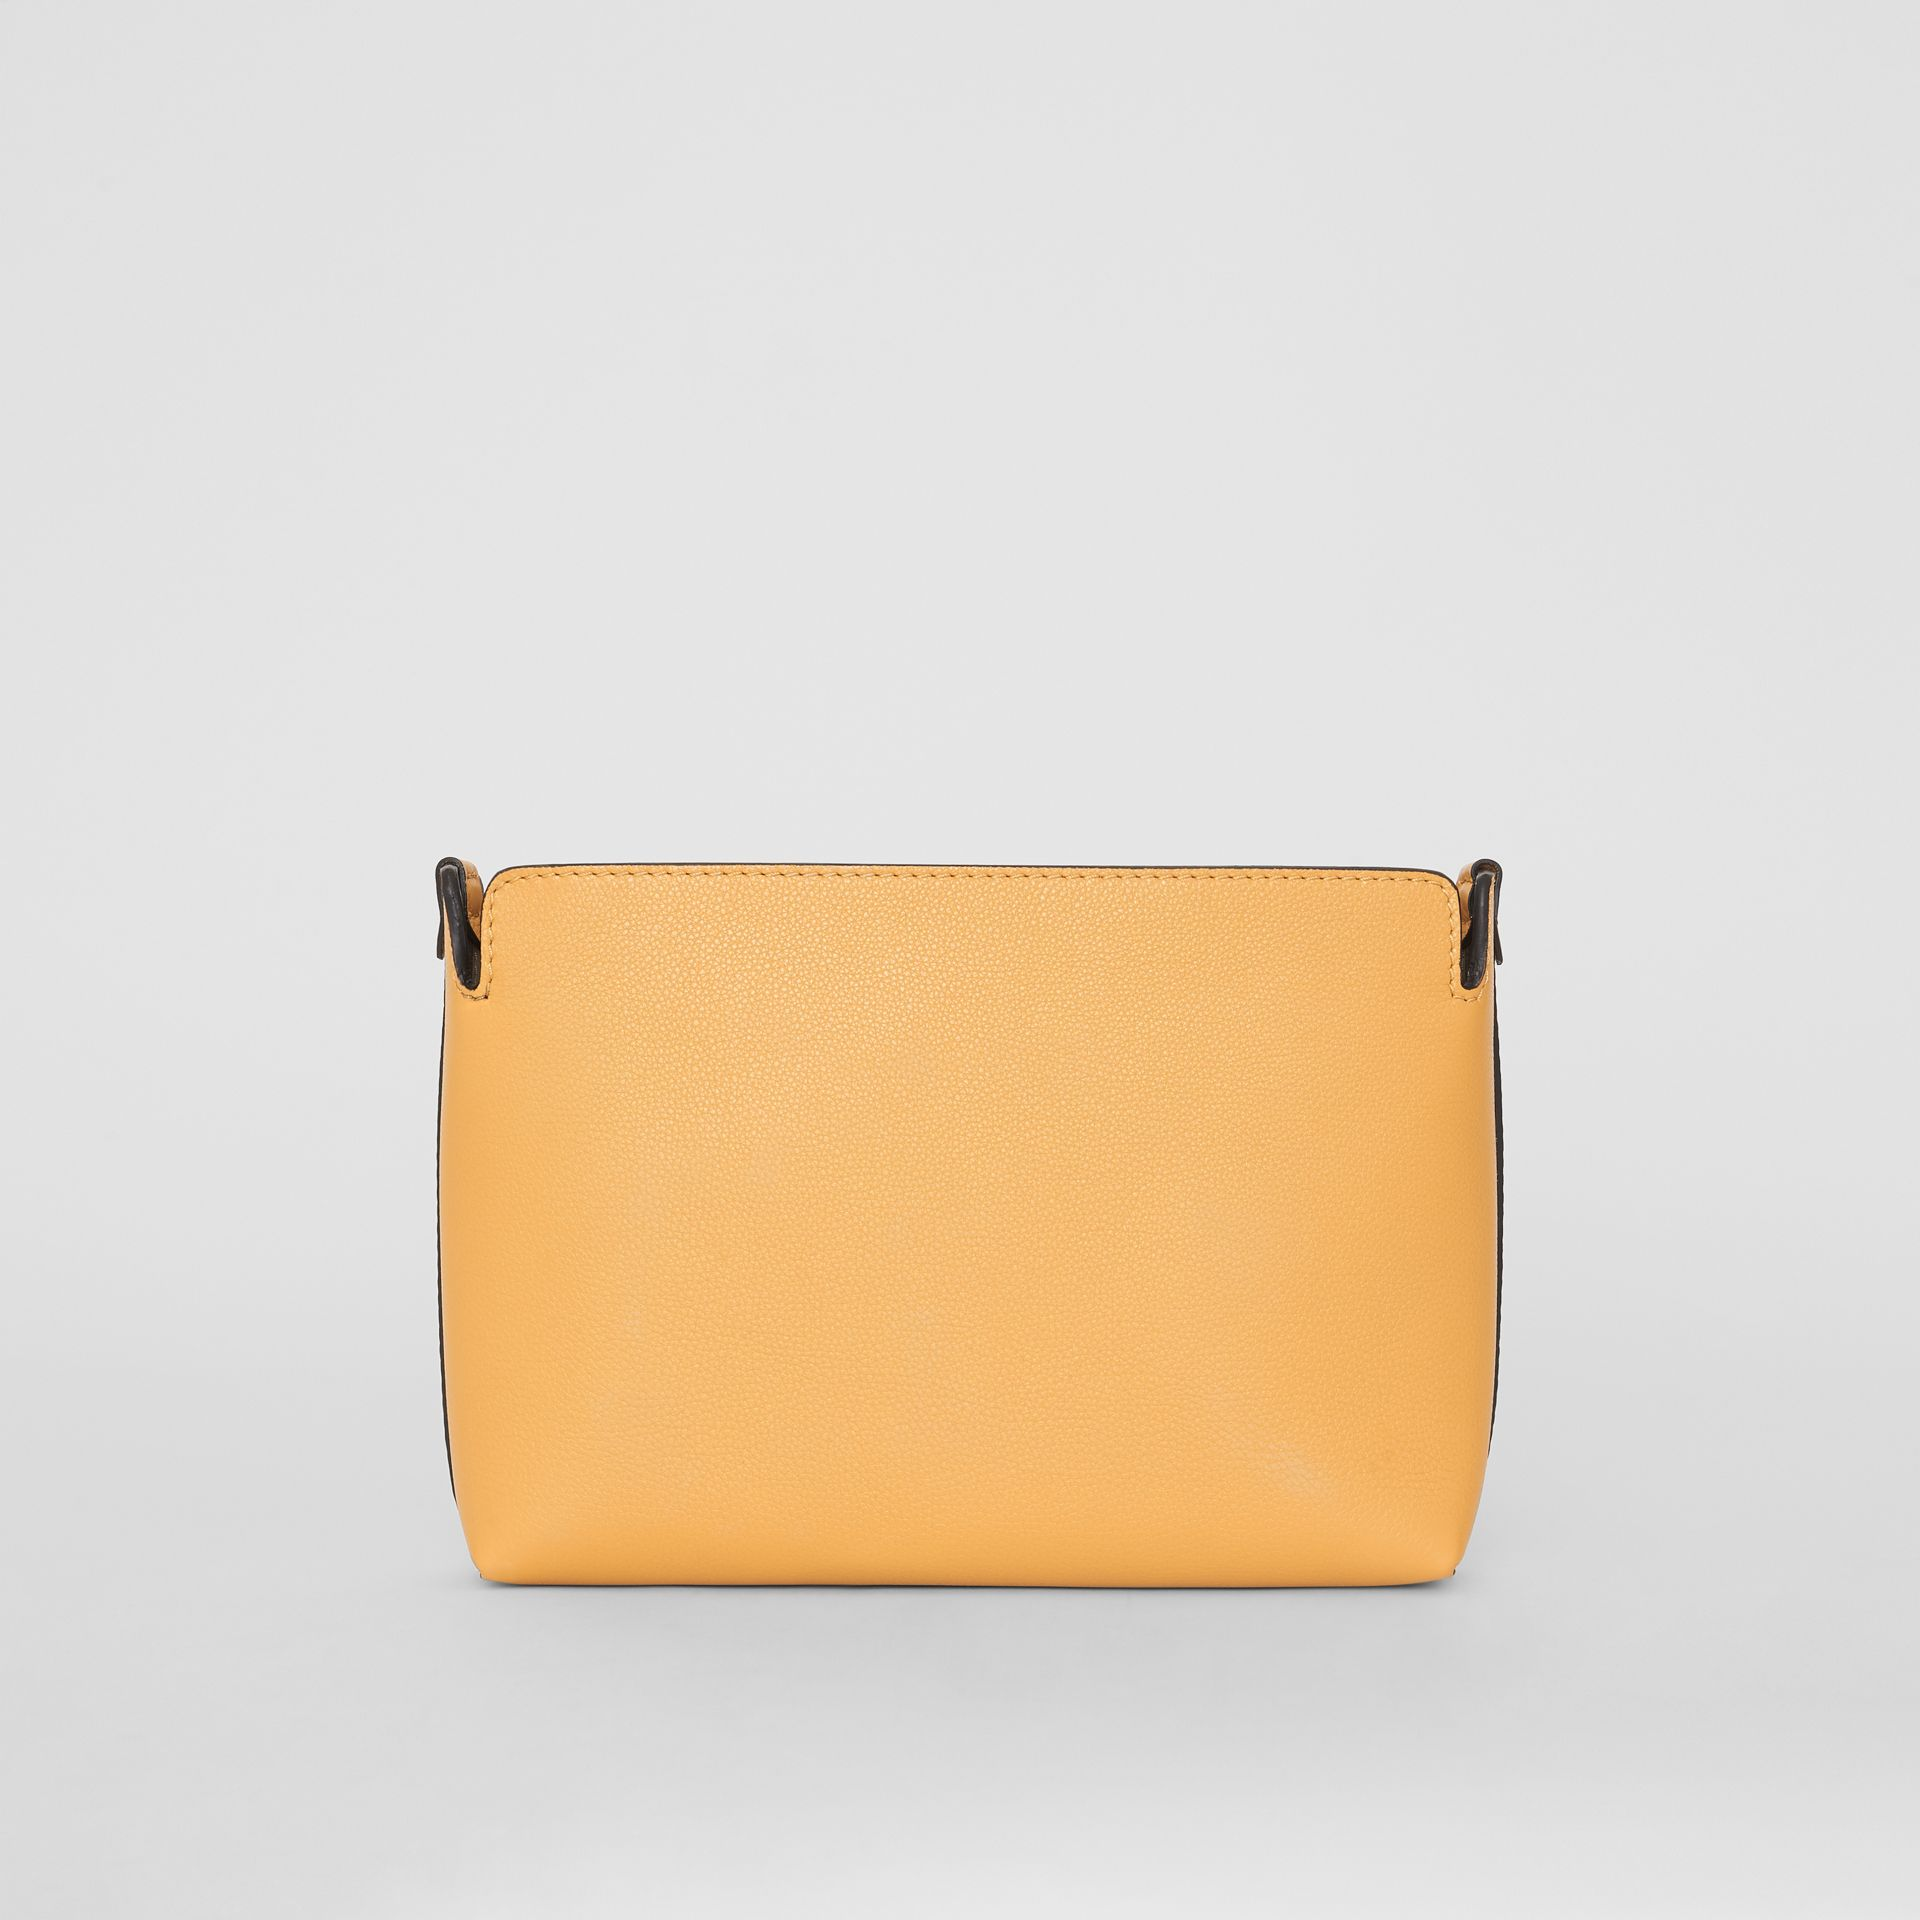 Medium Tri-tone Leather Clutch in Limestone/cornflower Yellow | Burberry - gallery image 5